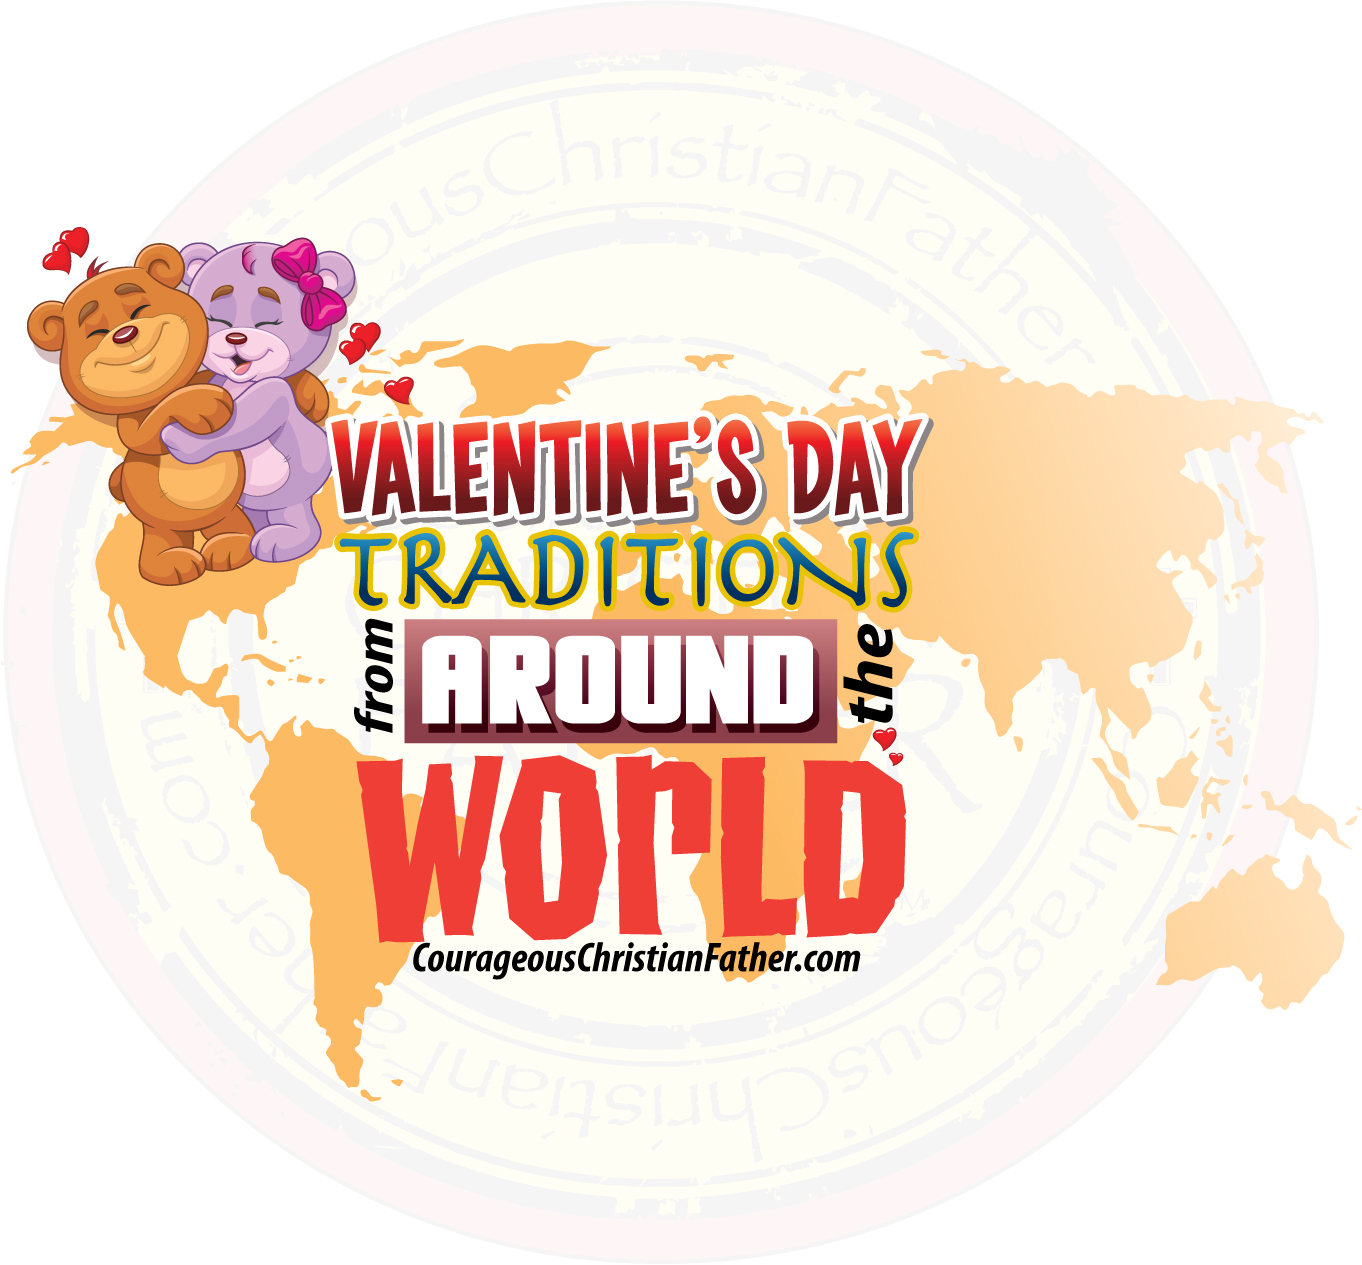 Valentine's Day Traditions from around the world - Valentine's Day is celebrated across the globe. Come Valentine's Day, candy, flowers and other gifts are exchanged between sweethearts in one of the many traditions associated with the holiday.